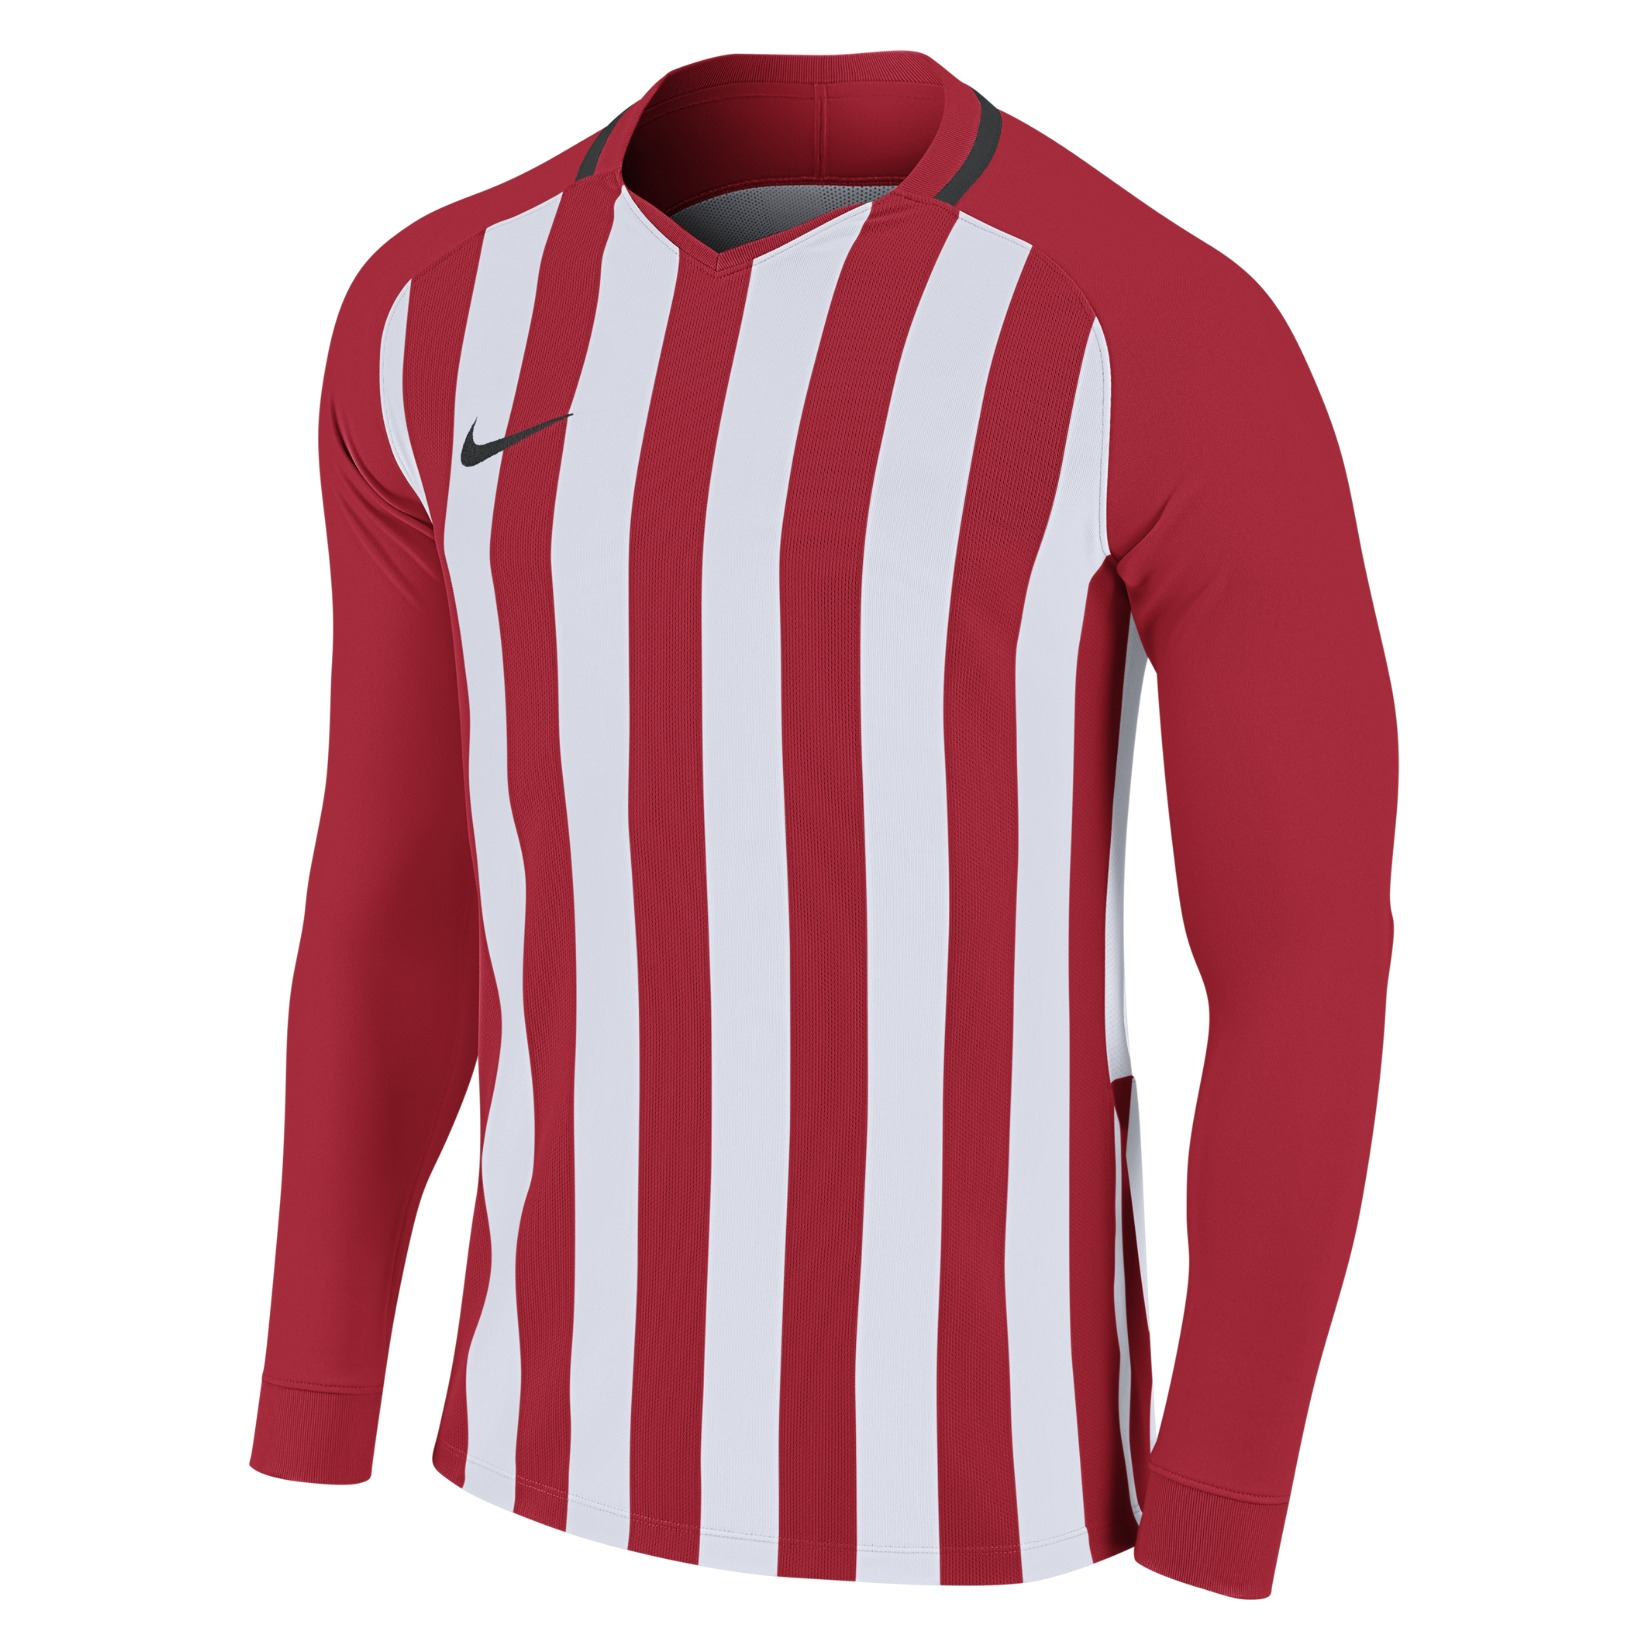 Nike Striped Division III Long Sleeve Football Shirt University Red-White-Black-Black